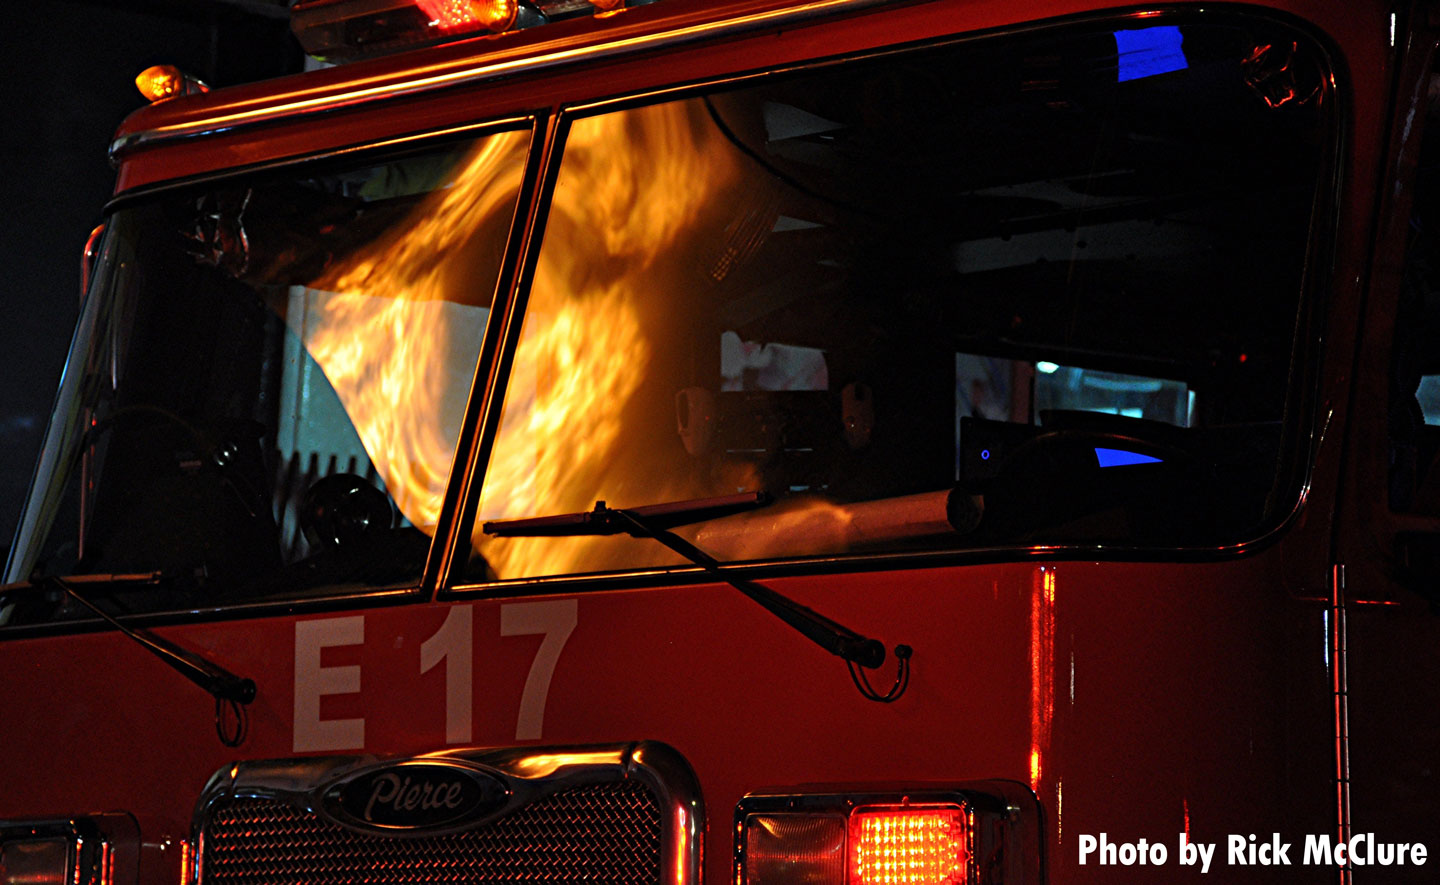 Fire reflected on the windshield of an apparatus.